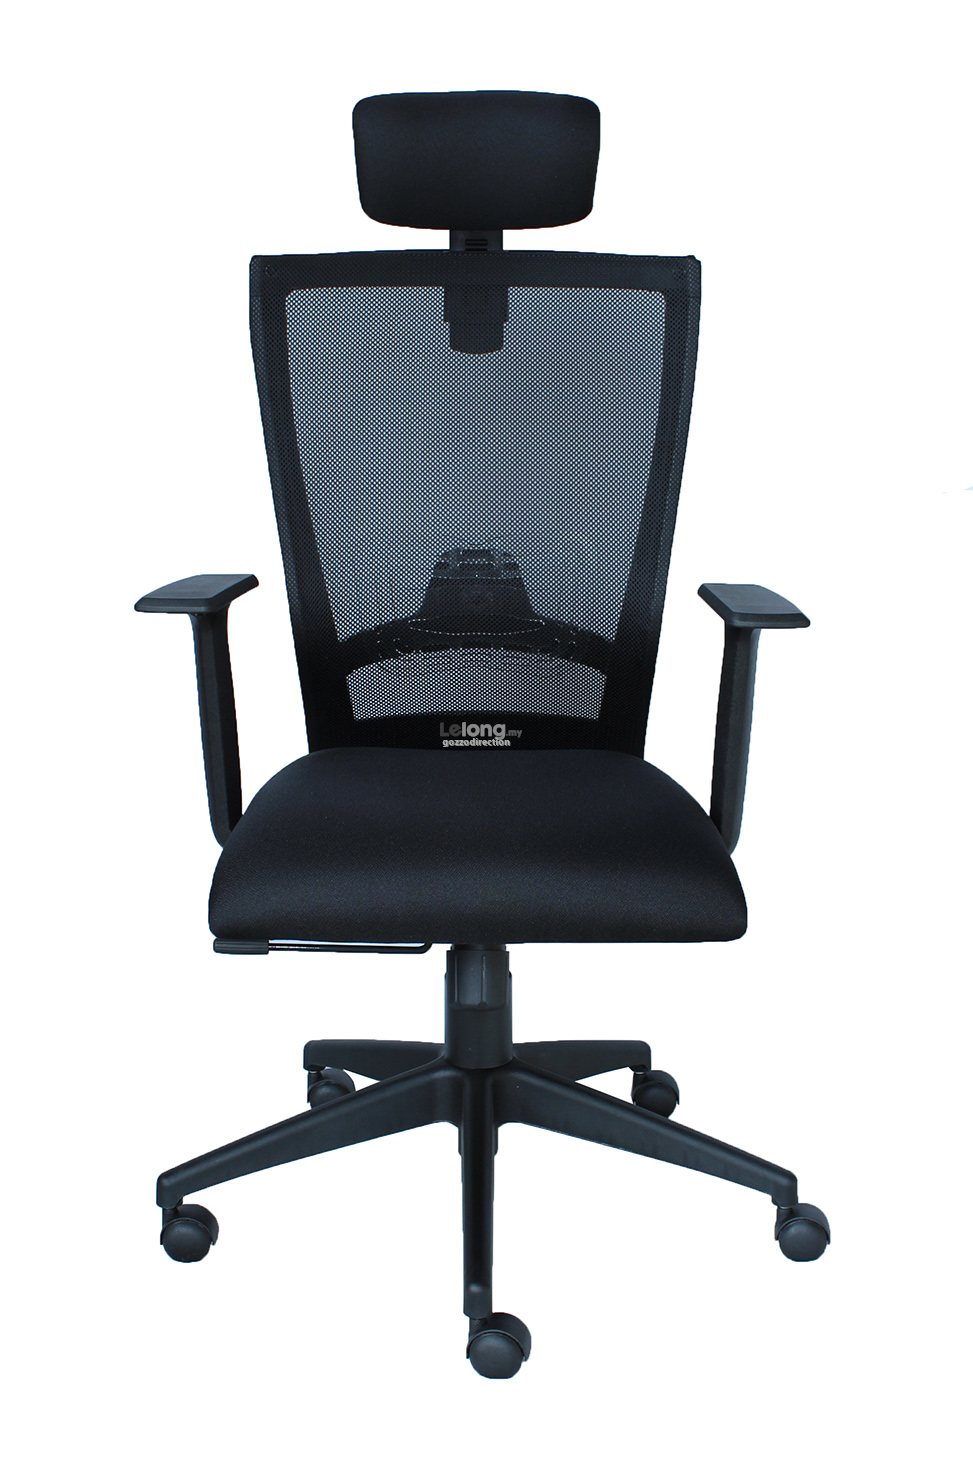 Ergonomic Mid Back Mesh Chair with Headrest